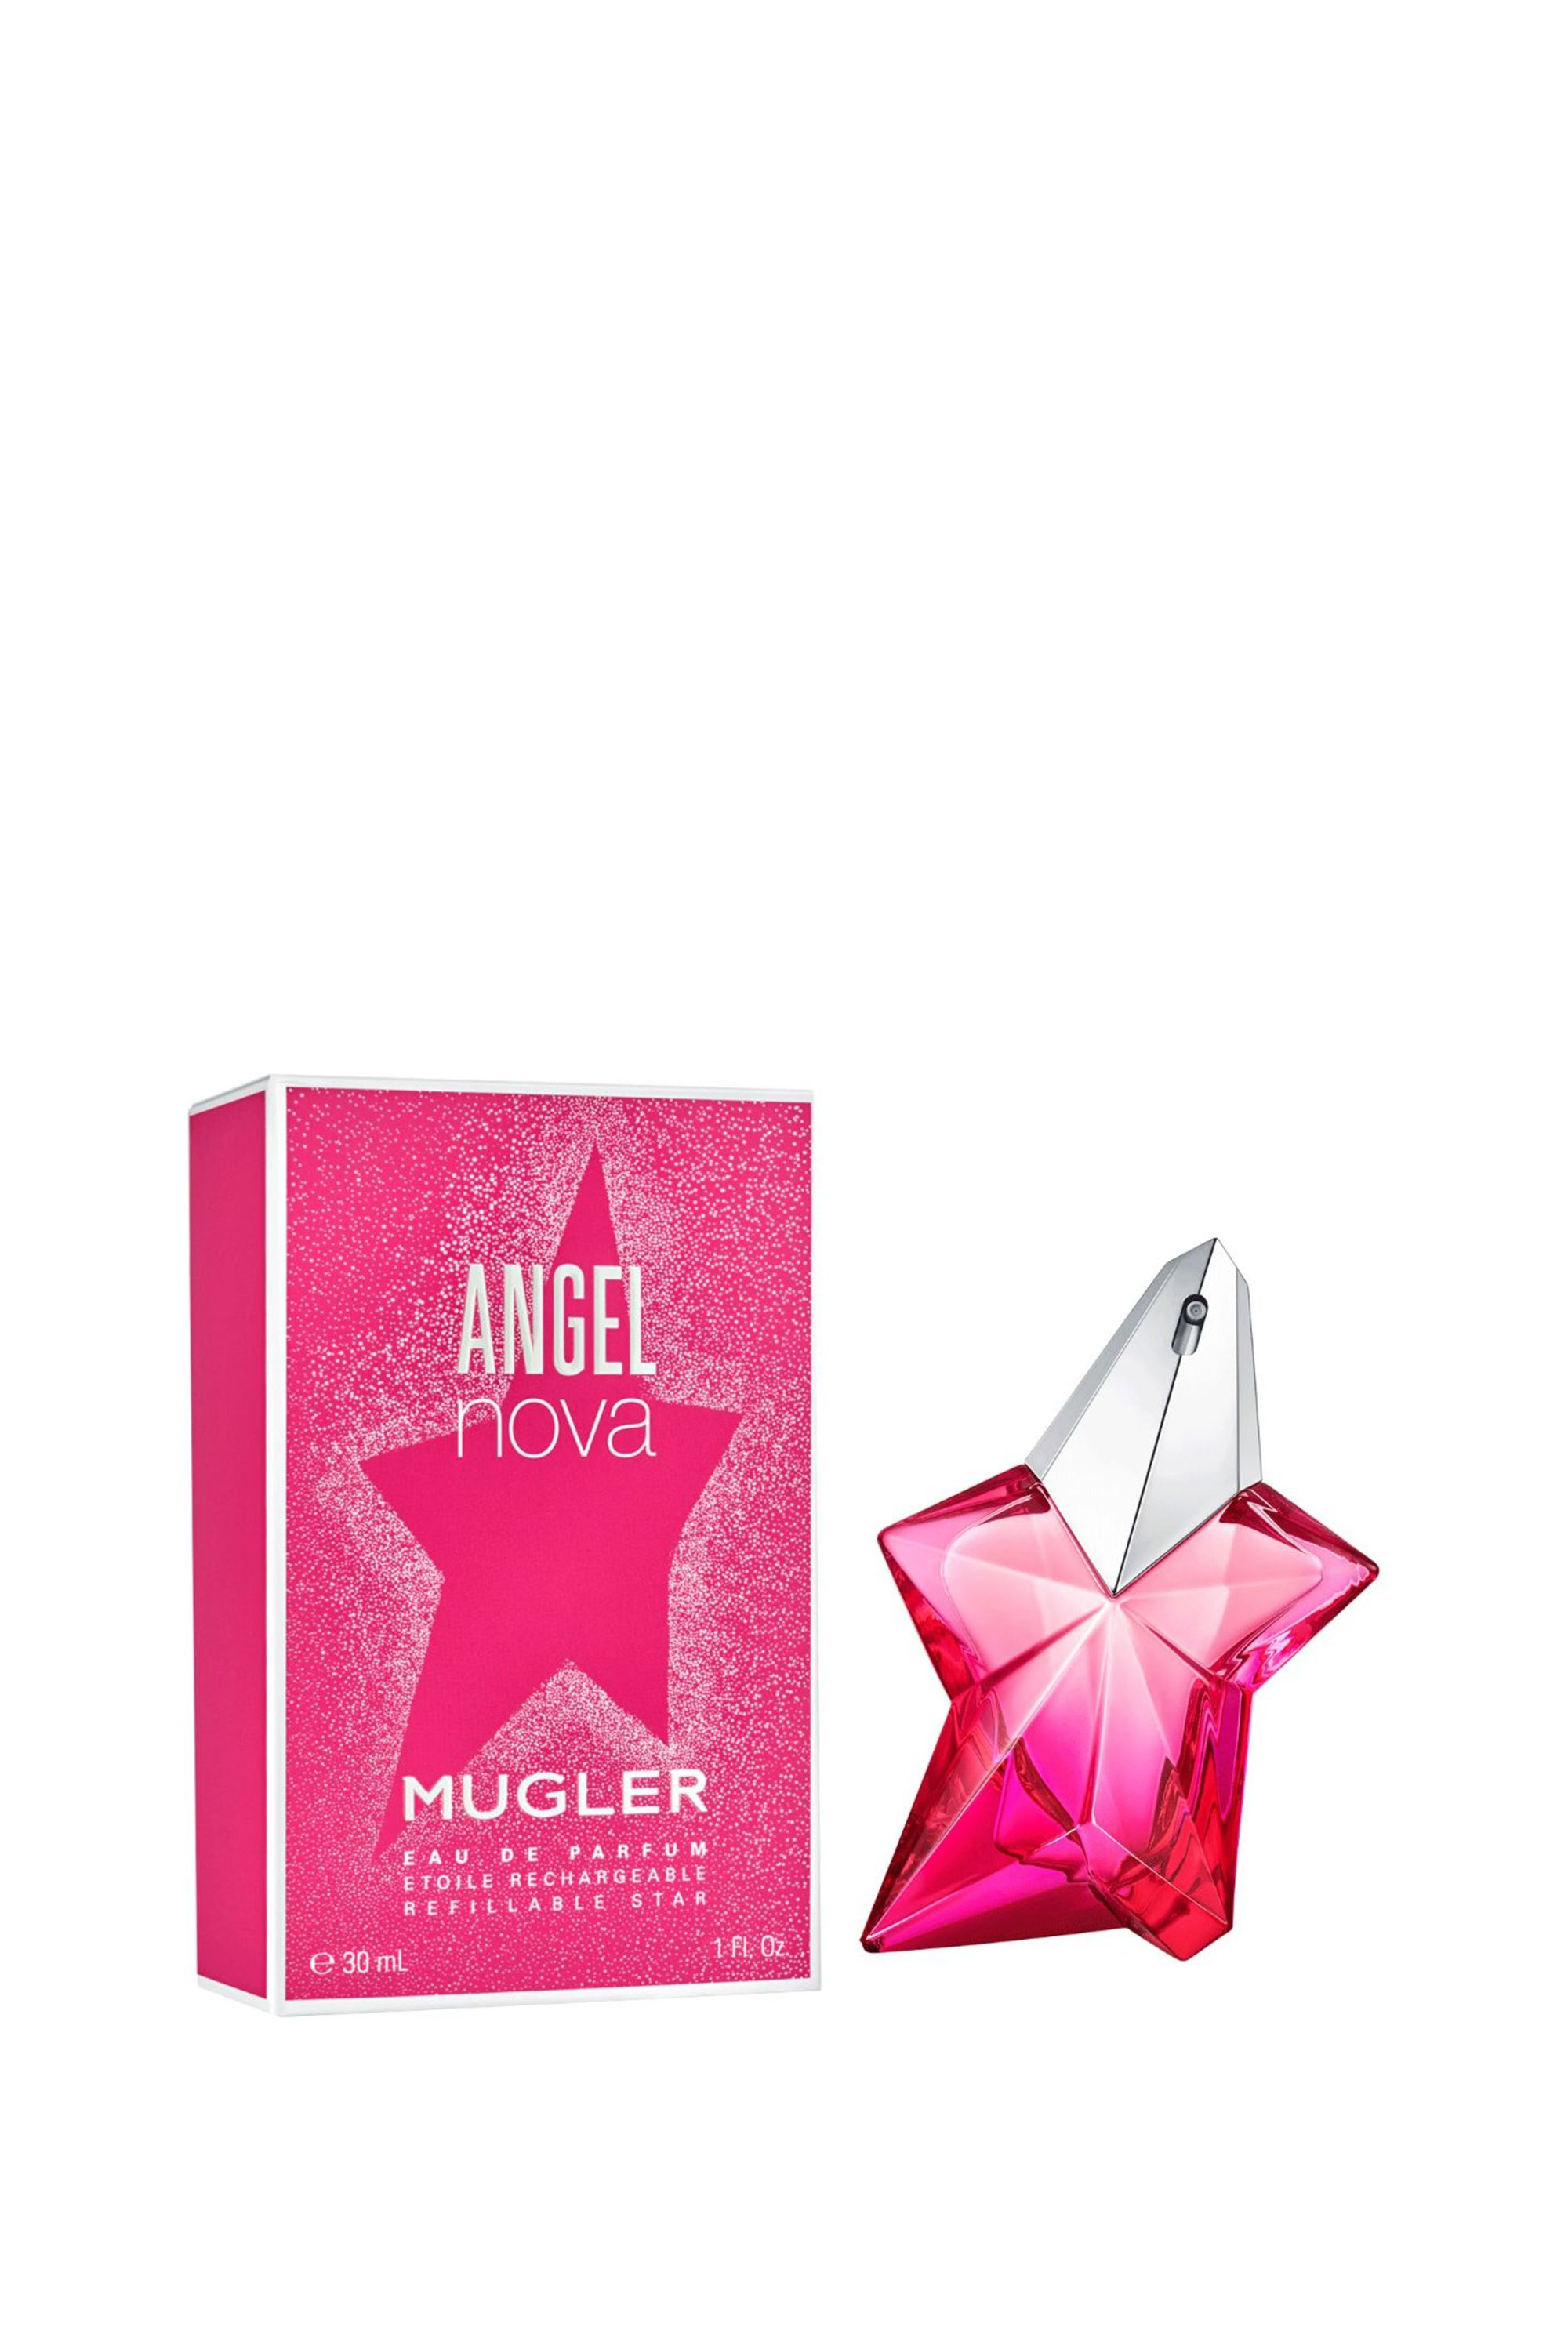 Blissim : Mugler - Eau de parfum Angel Nova - 30ml